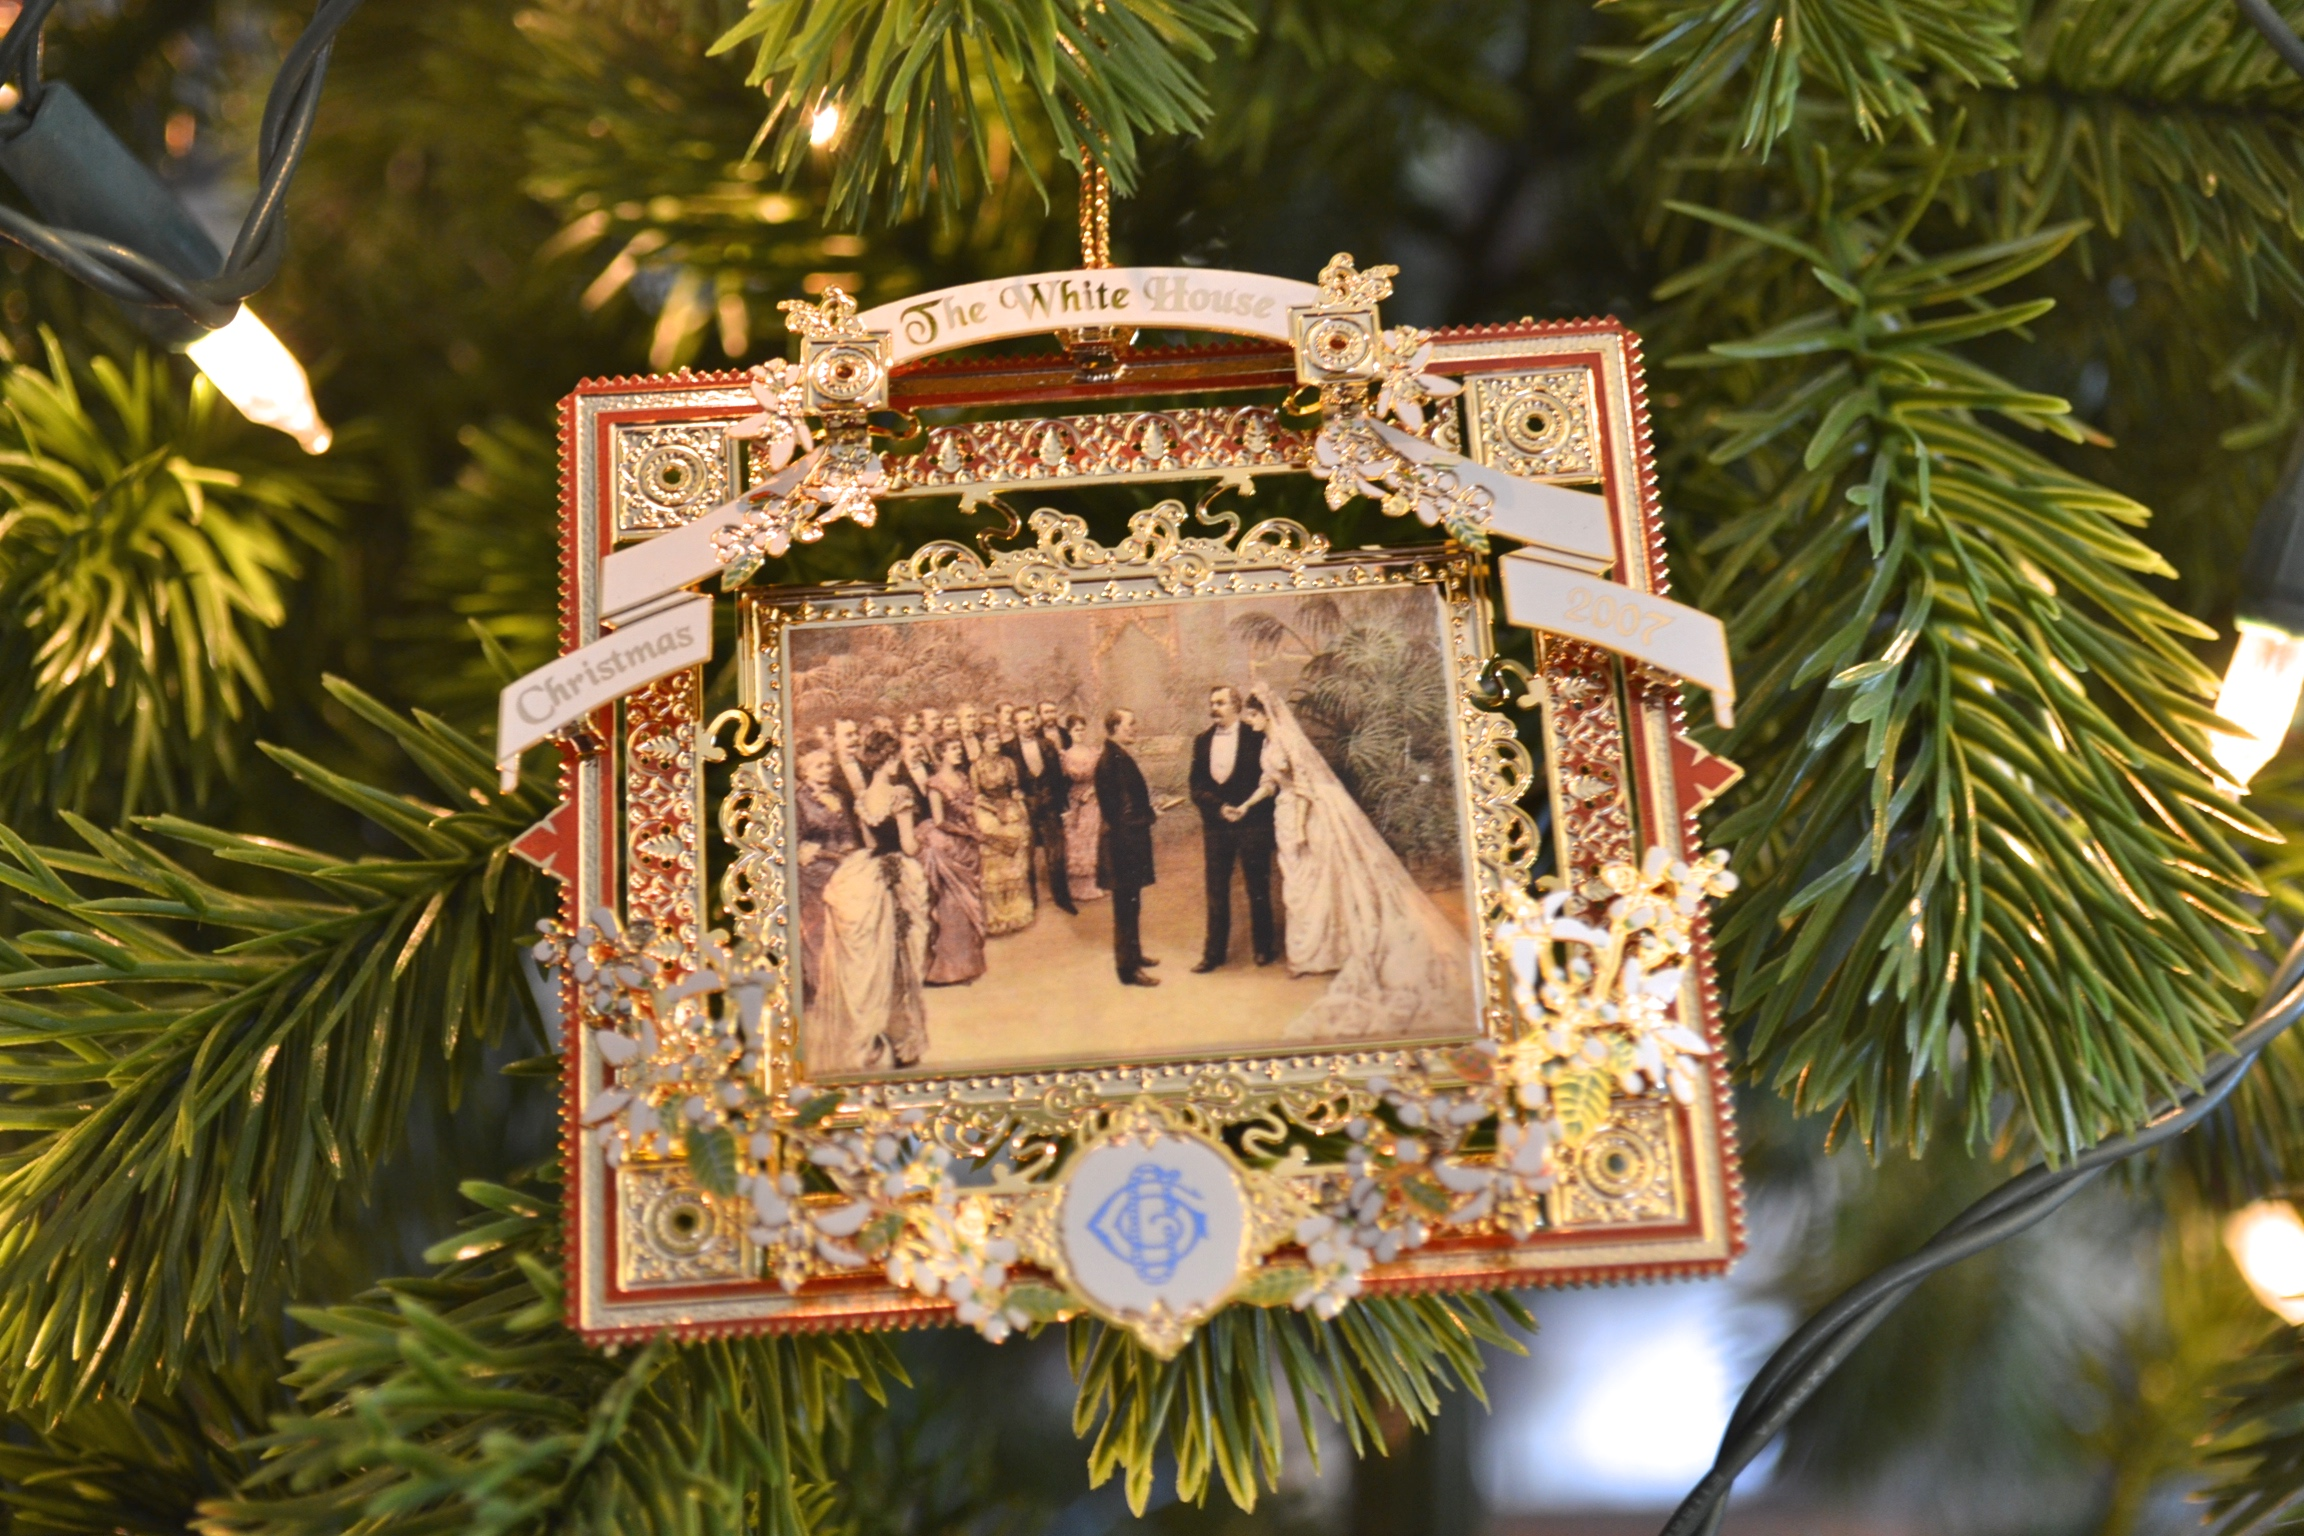 White house christmas ornaments historical society - Ornament From The White House Collectiion